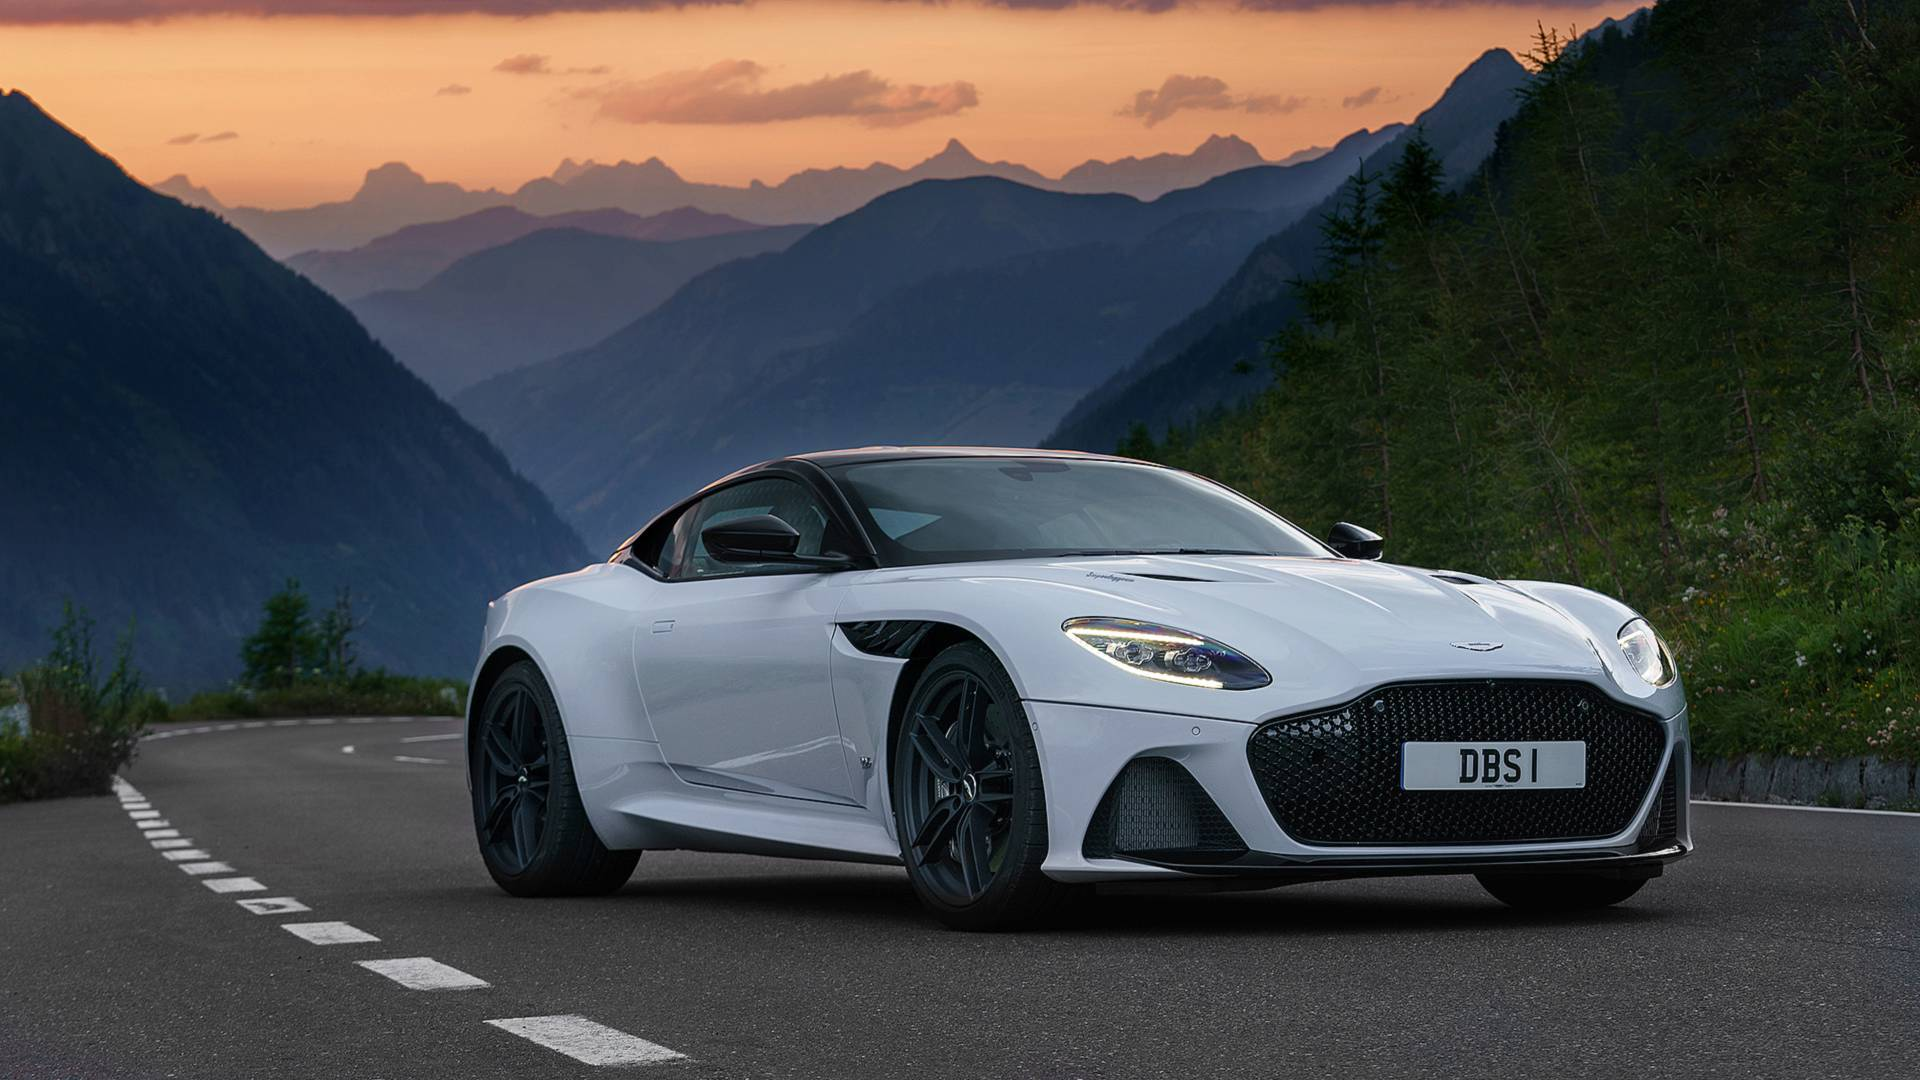 2019 aston martin dbs superleggera first drive: what's in a name?